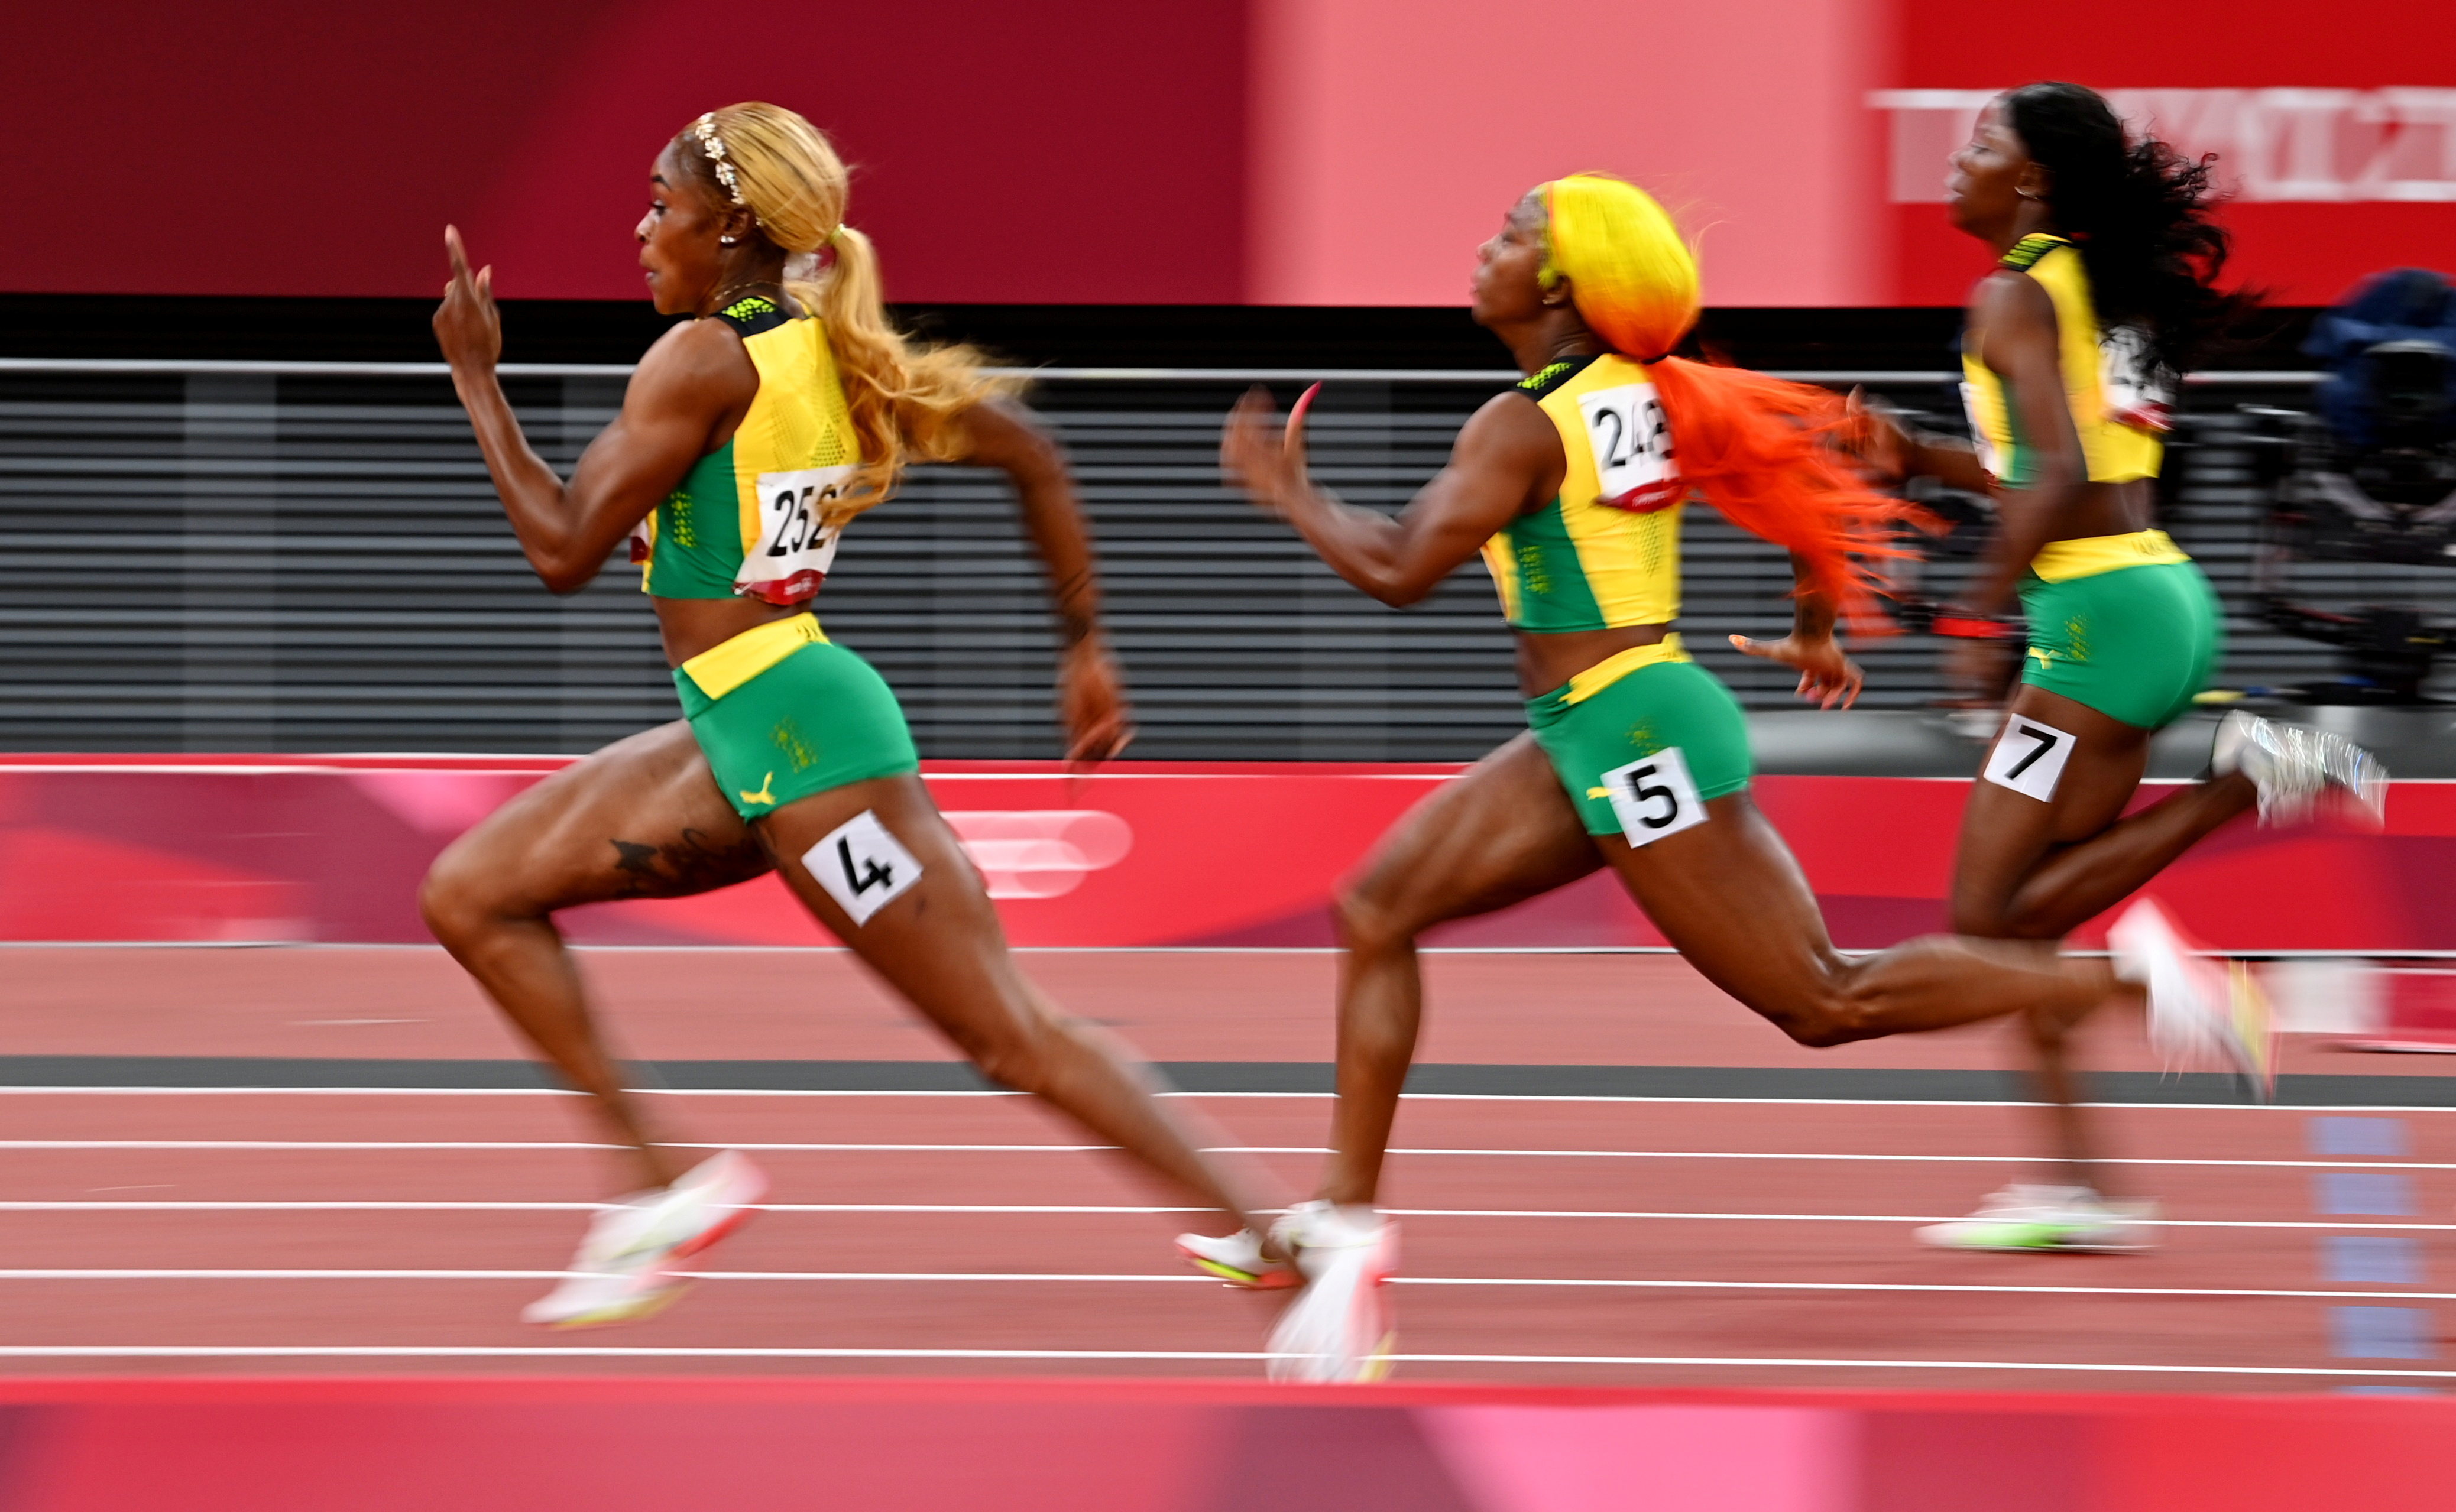 Tokyo 2020 Olympics - Athletics - Women's 100m - Final - OLS - Olympic Stadium, Tokyo, Japan - July 31, 2021. Elaine Thompson-Herah of Jamaica, Shelly-Ann Fraser-Pryce of Jamaica and Shericka Jackson of Jamaica in action REUTERS/Dylan Martinez